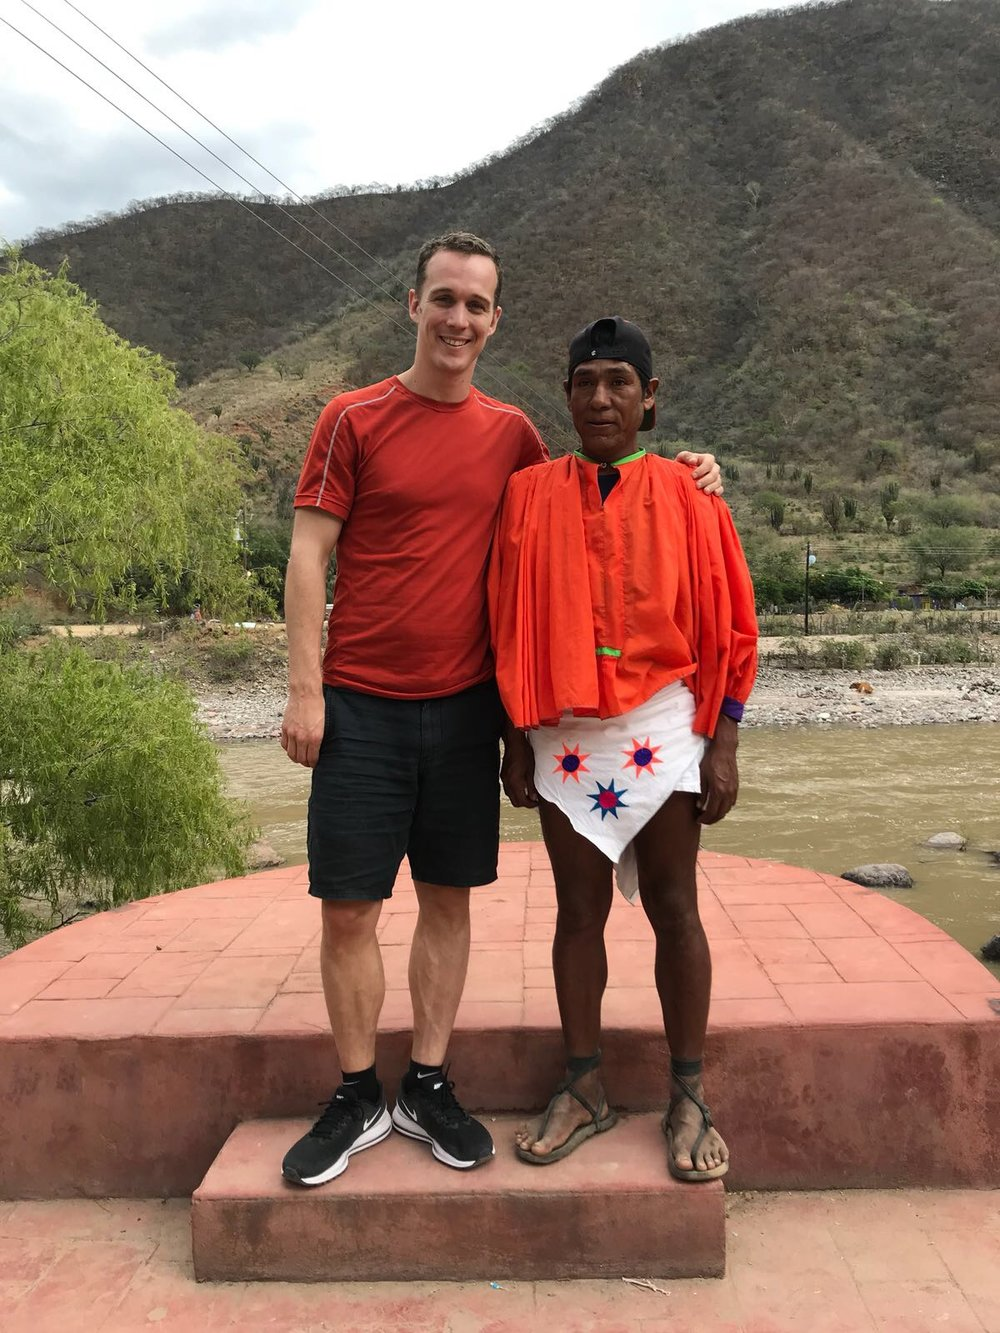 Arnolfo, the winner of the race in  Born to Run , and I have slightly different attire.  Check out his shoes compared to mine!